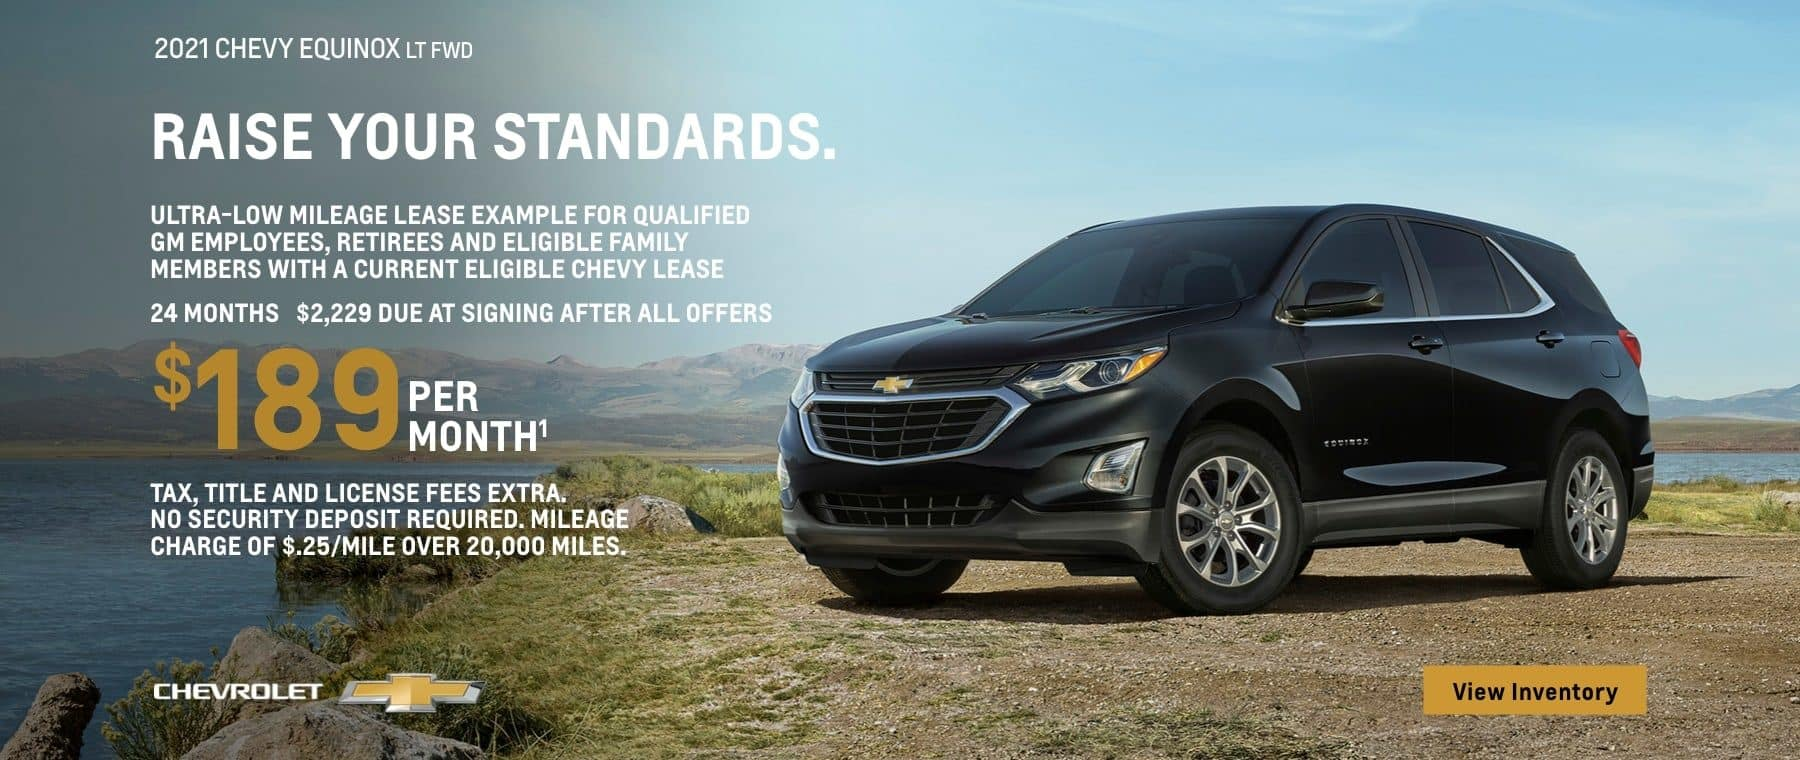 2021 Chevy Equinox LT FWD. Raise your standards. Ultra-low mileage lease example for qualified GM employees, retirees, and eligible family members with a current eligible Chevy lease. $189 per month. 24 months. $2,229 due at signing after all offers. Take, title and license fees extra. No security deposit required. Mileage charge of $.25/mile over 20,000.